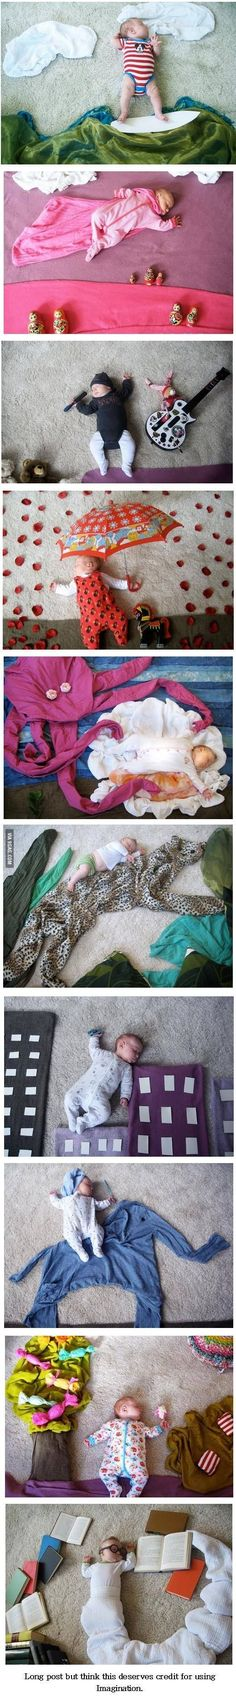 New Born Baby Photography Picture Description Using Imagination, You're doing it right.